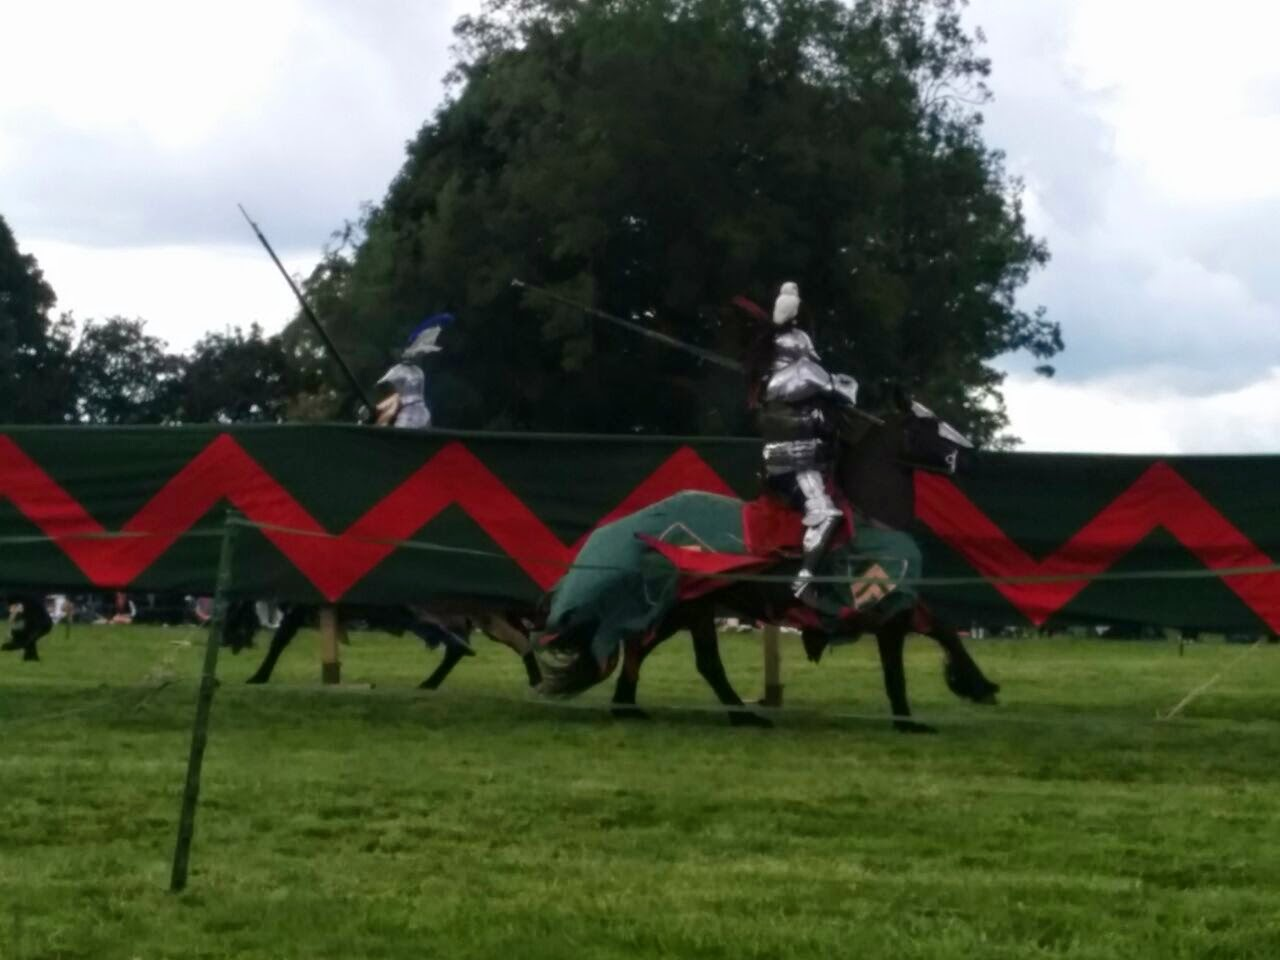 Grand Medieval Joust at Bolsover Castle